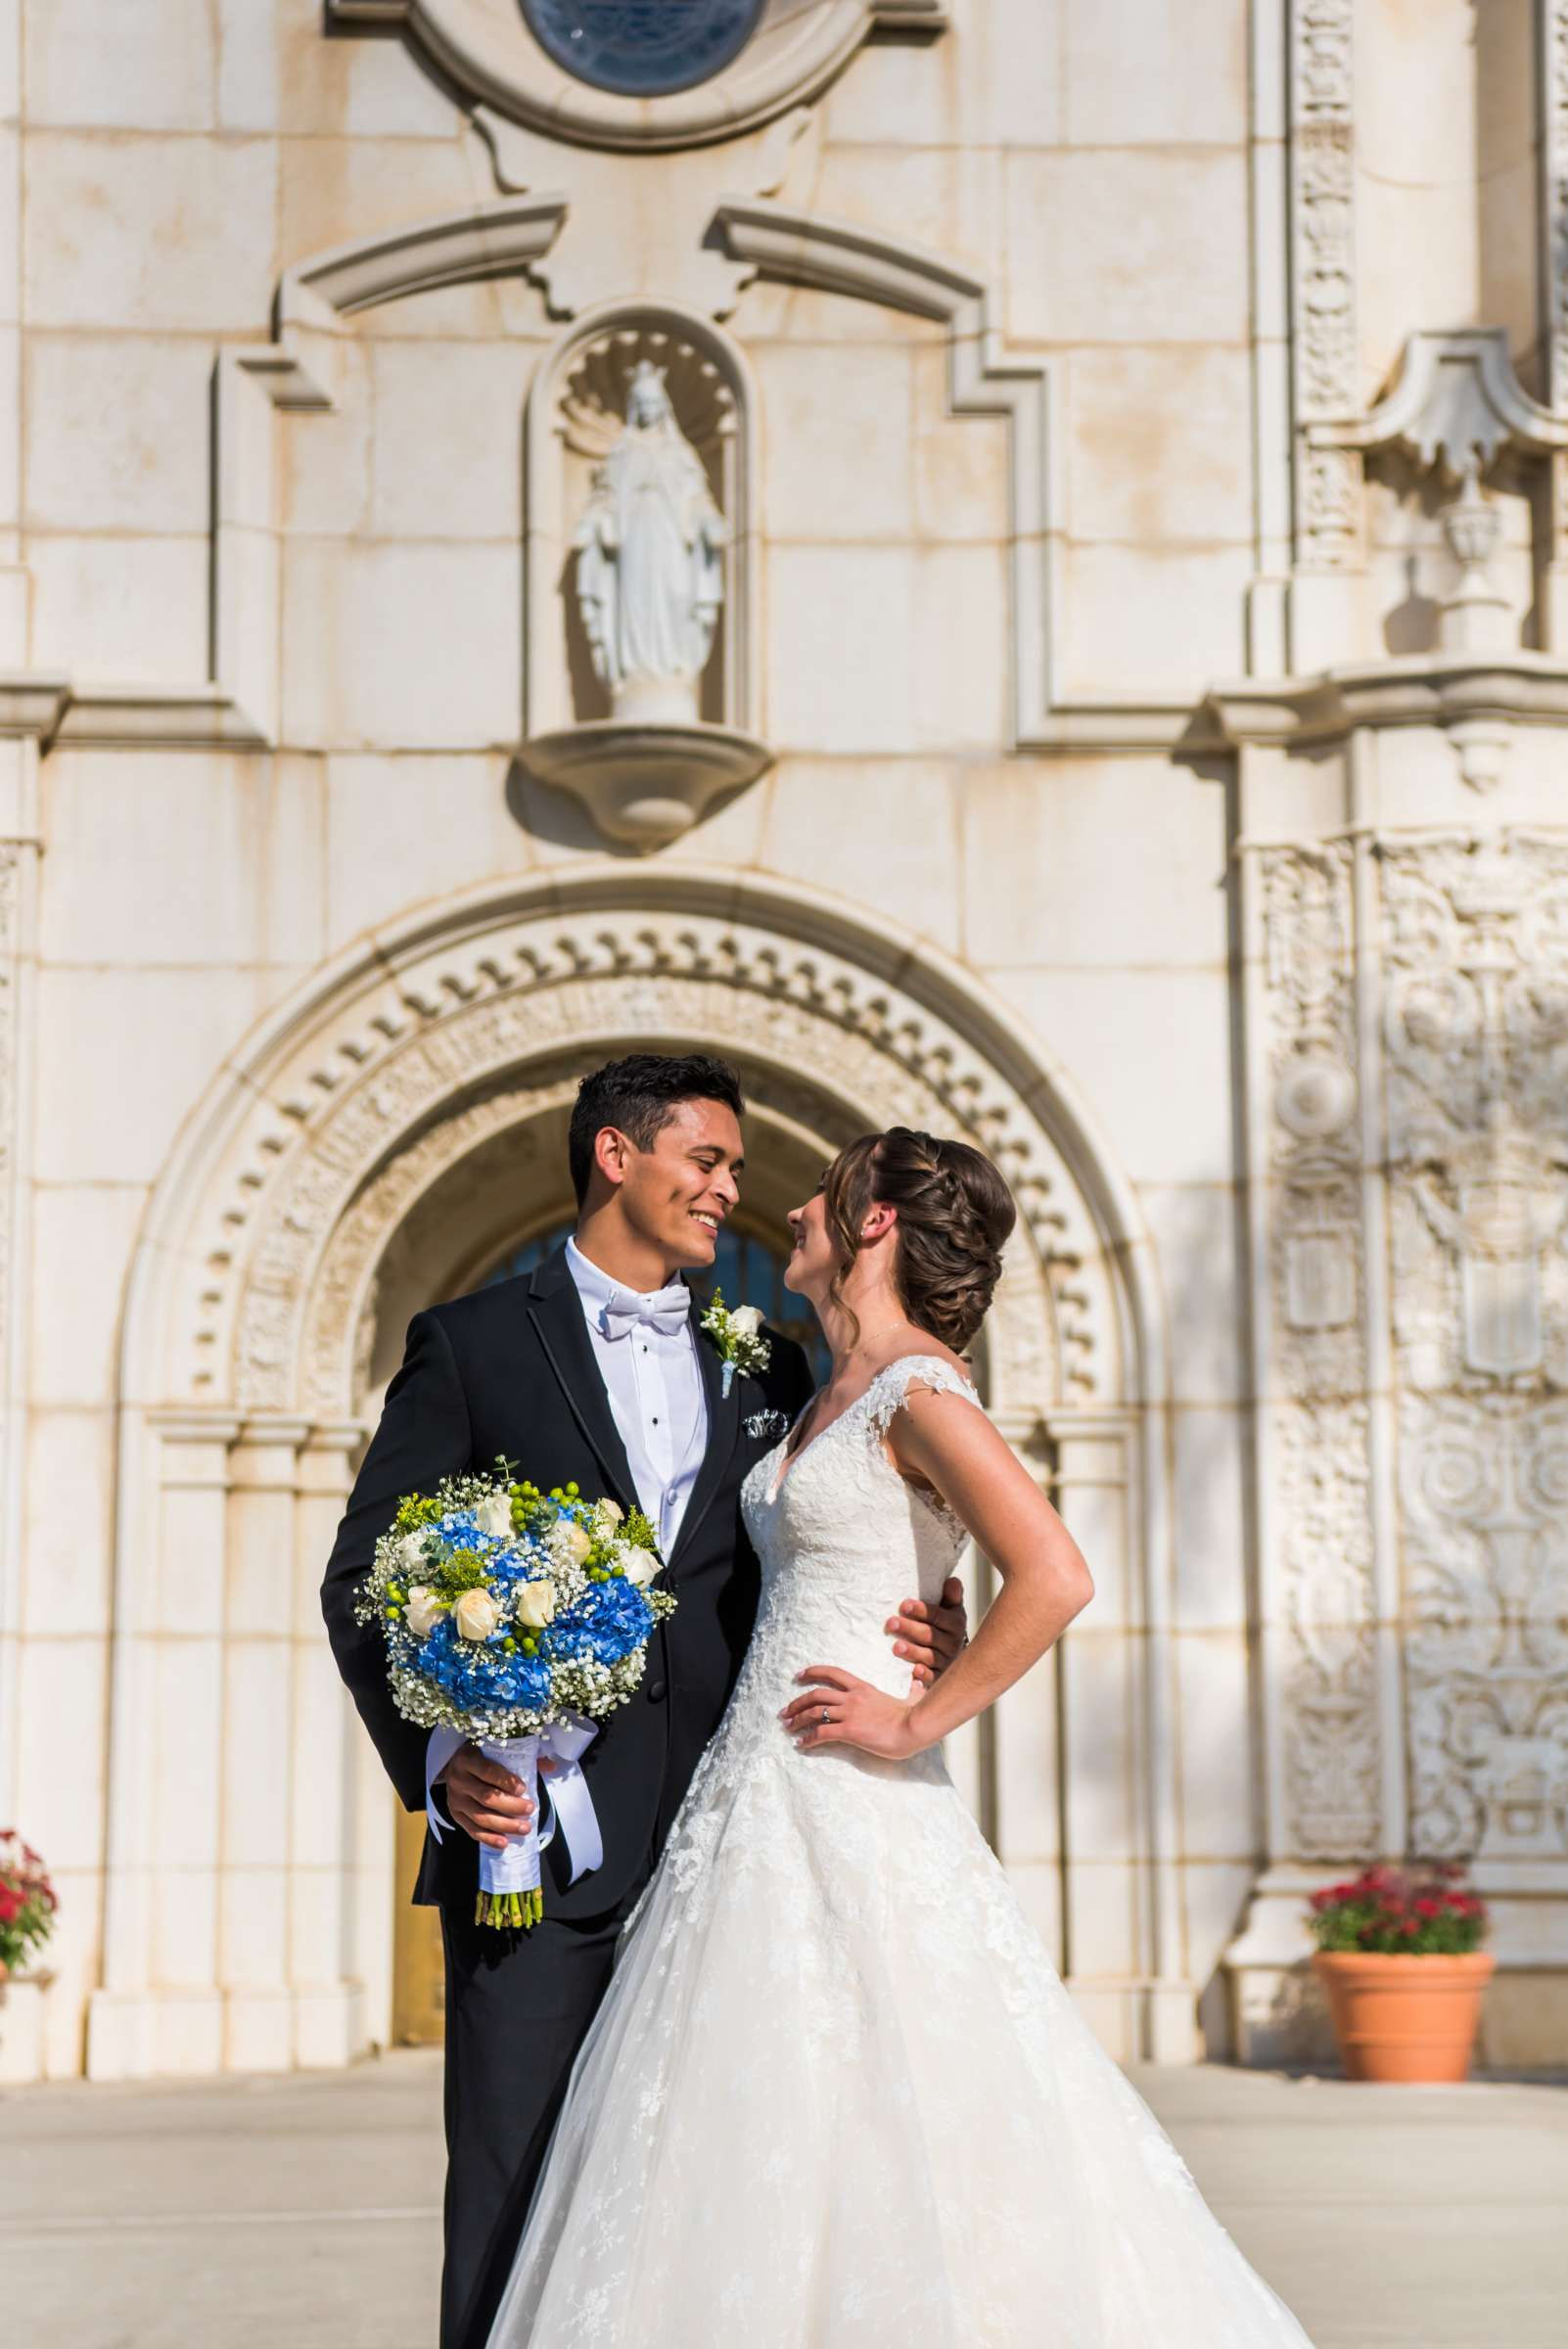 The Immaculata Wedding, Arianna and Jonah Wedding Photo #31 by True Photography